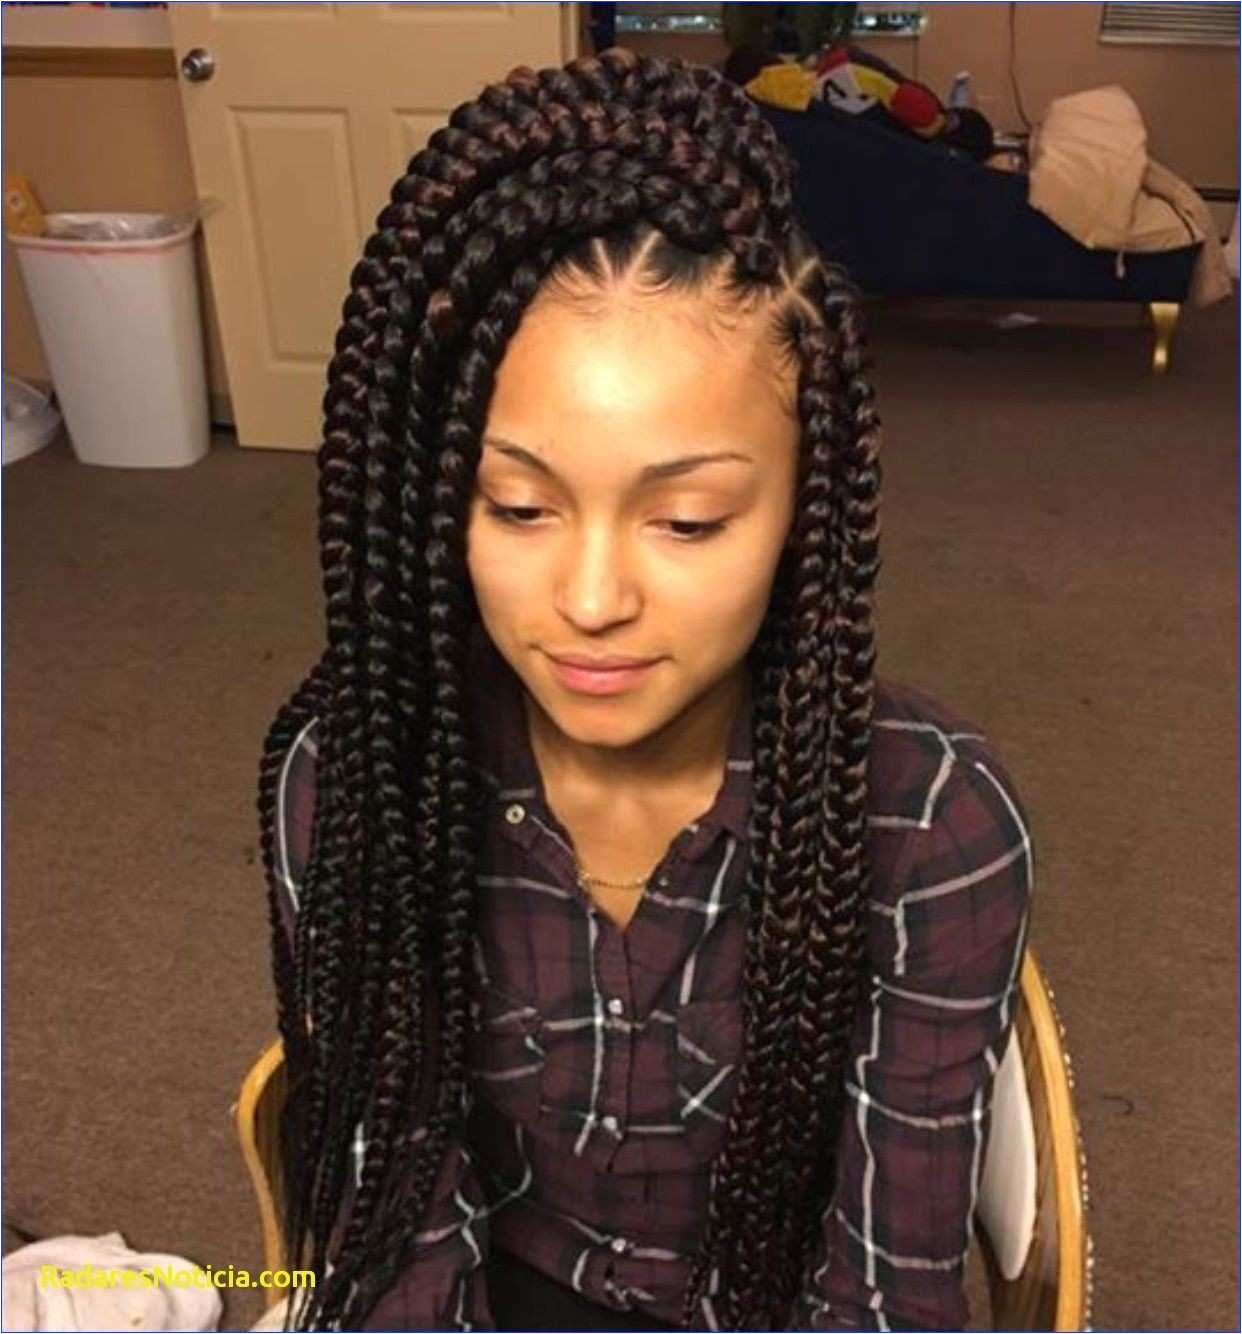 Braid Hairstyles for Lil Girls New Lovely Kids Braided Hairstyles with Beads Hairstyle Ideas Braid